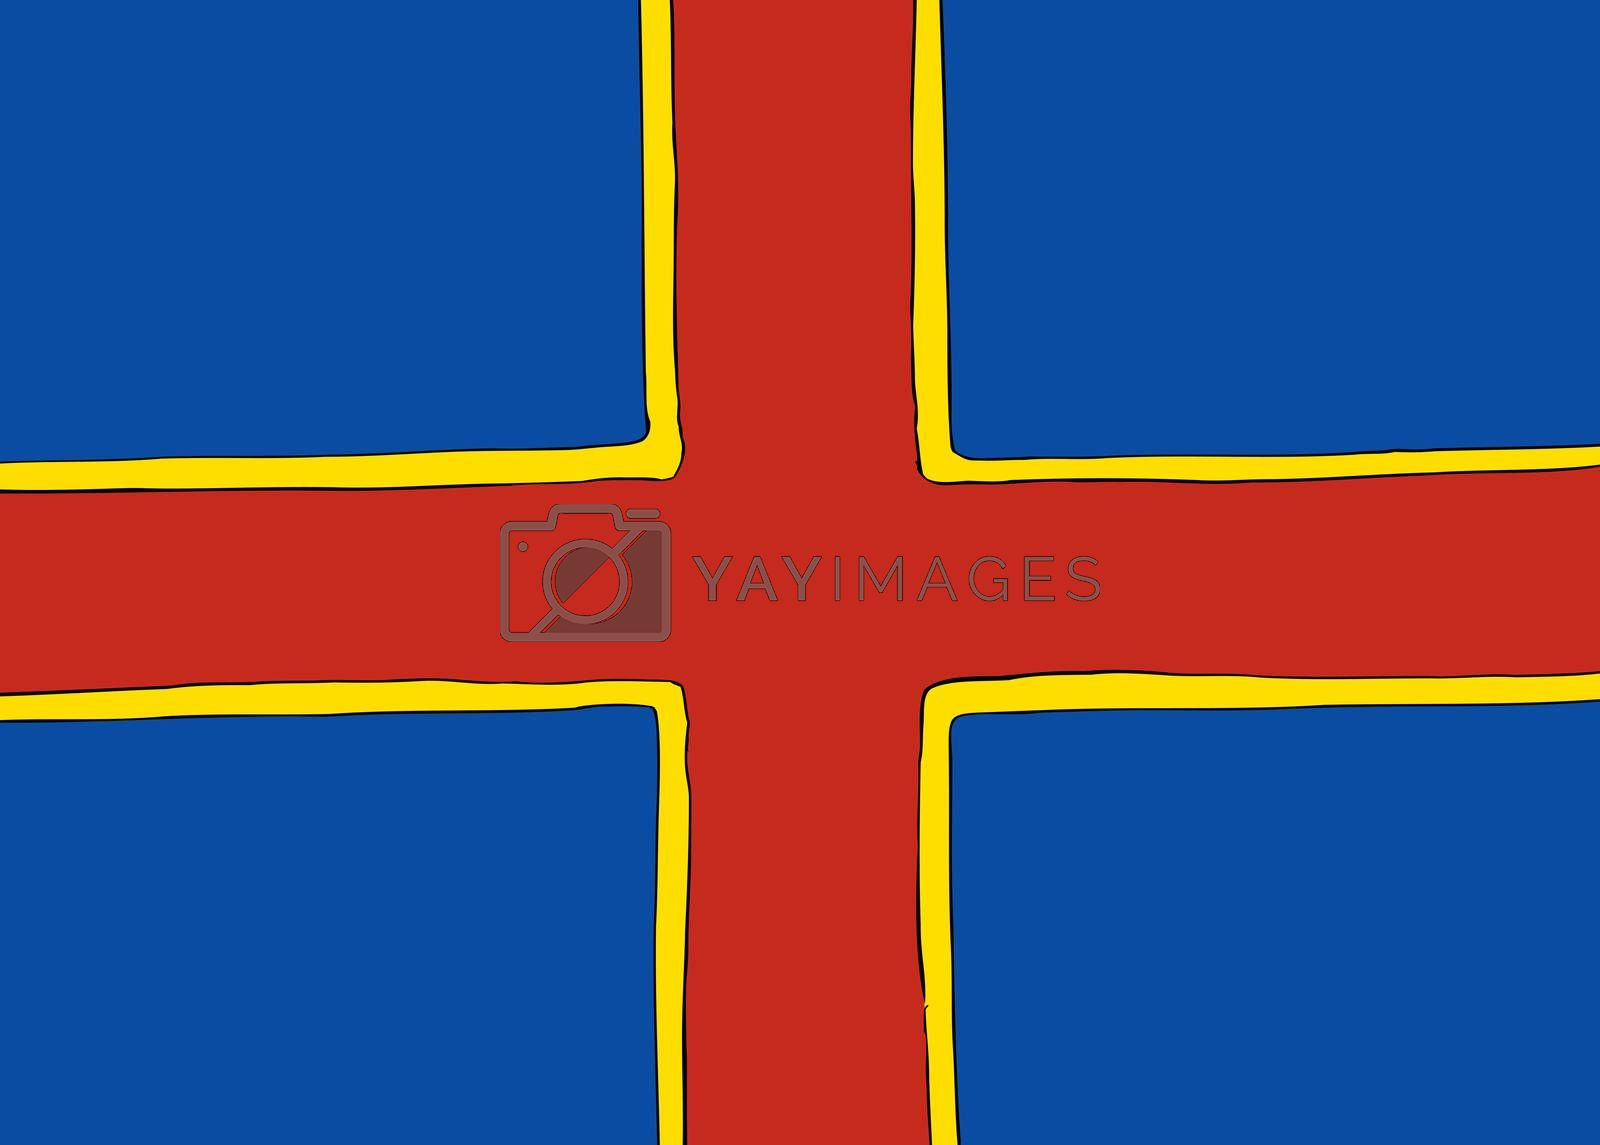 Symmetrical centered version of a Nordic Cross flag representing Ahvenanmaa